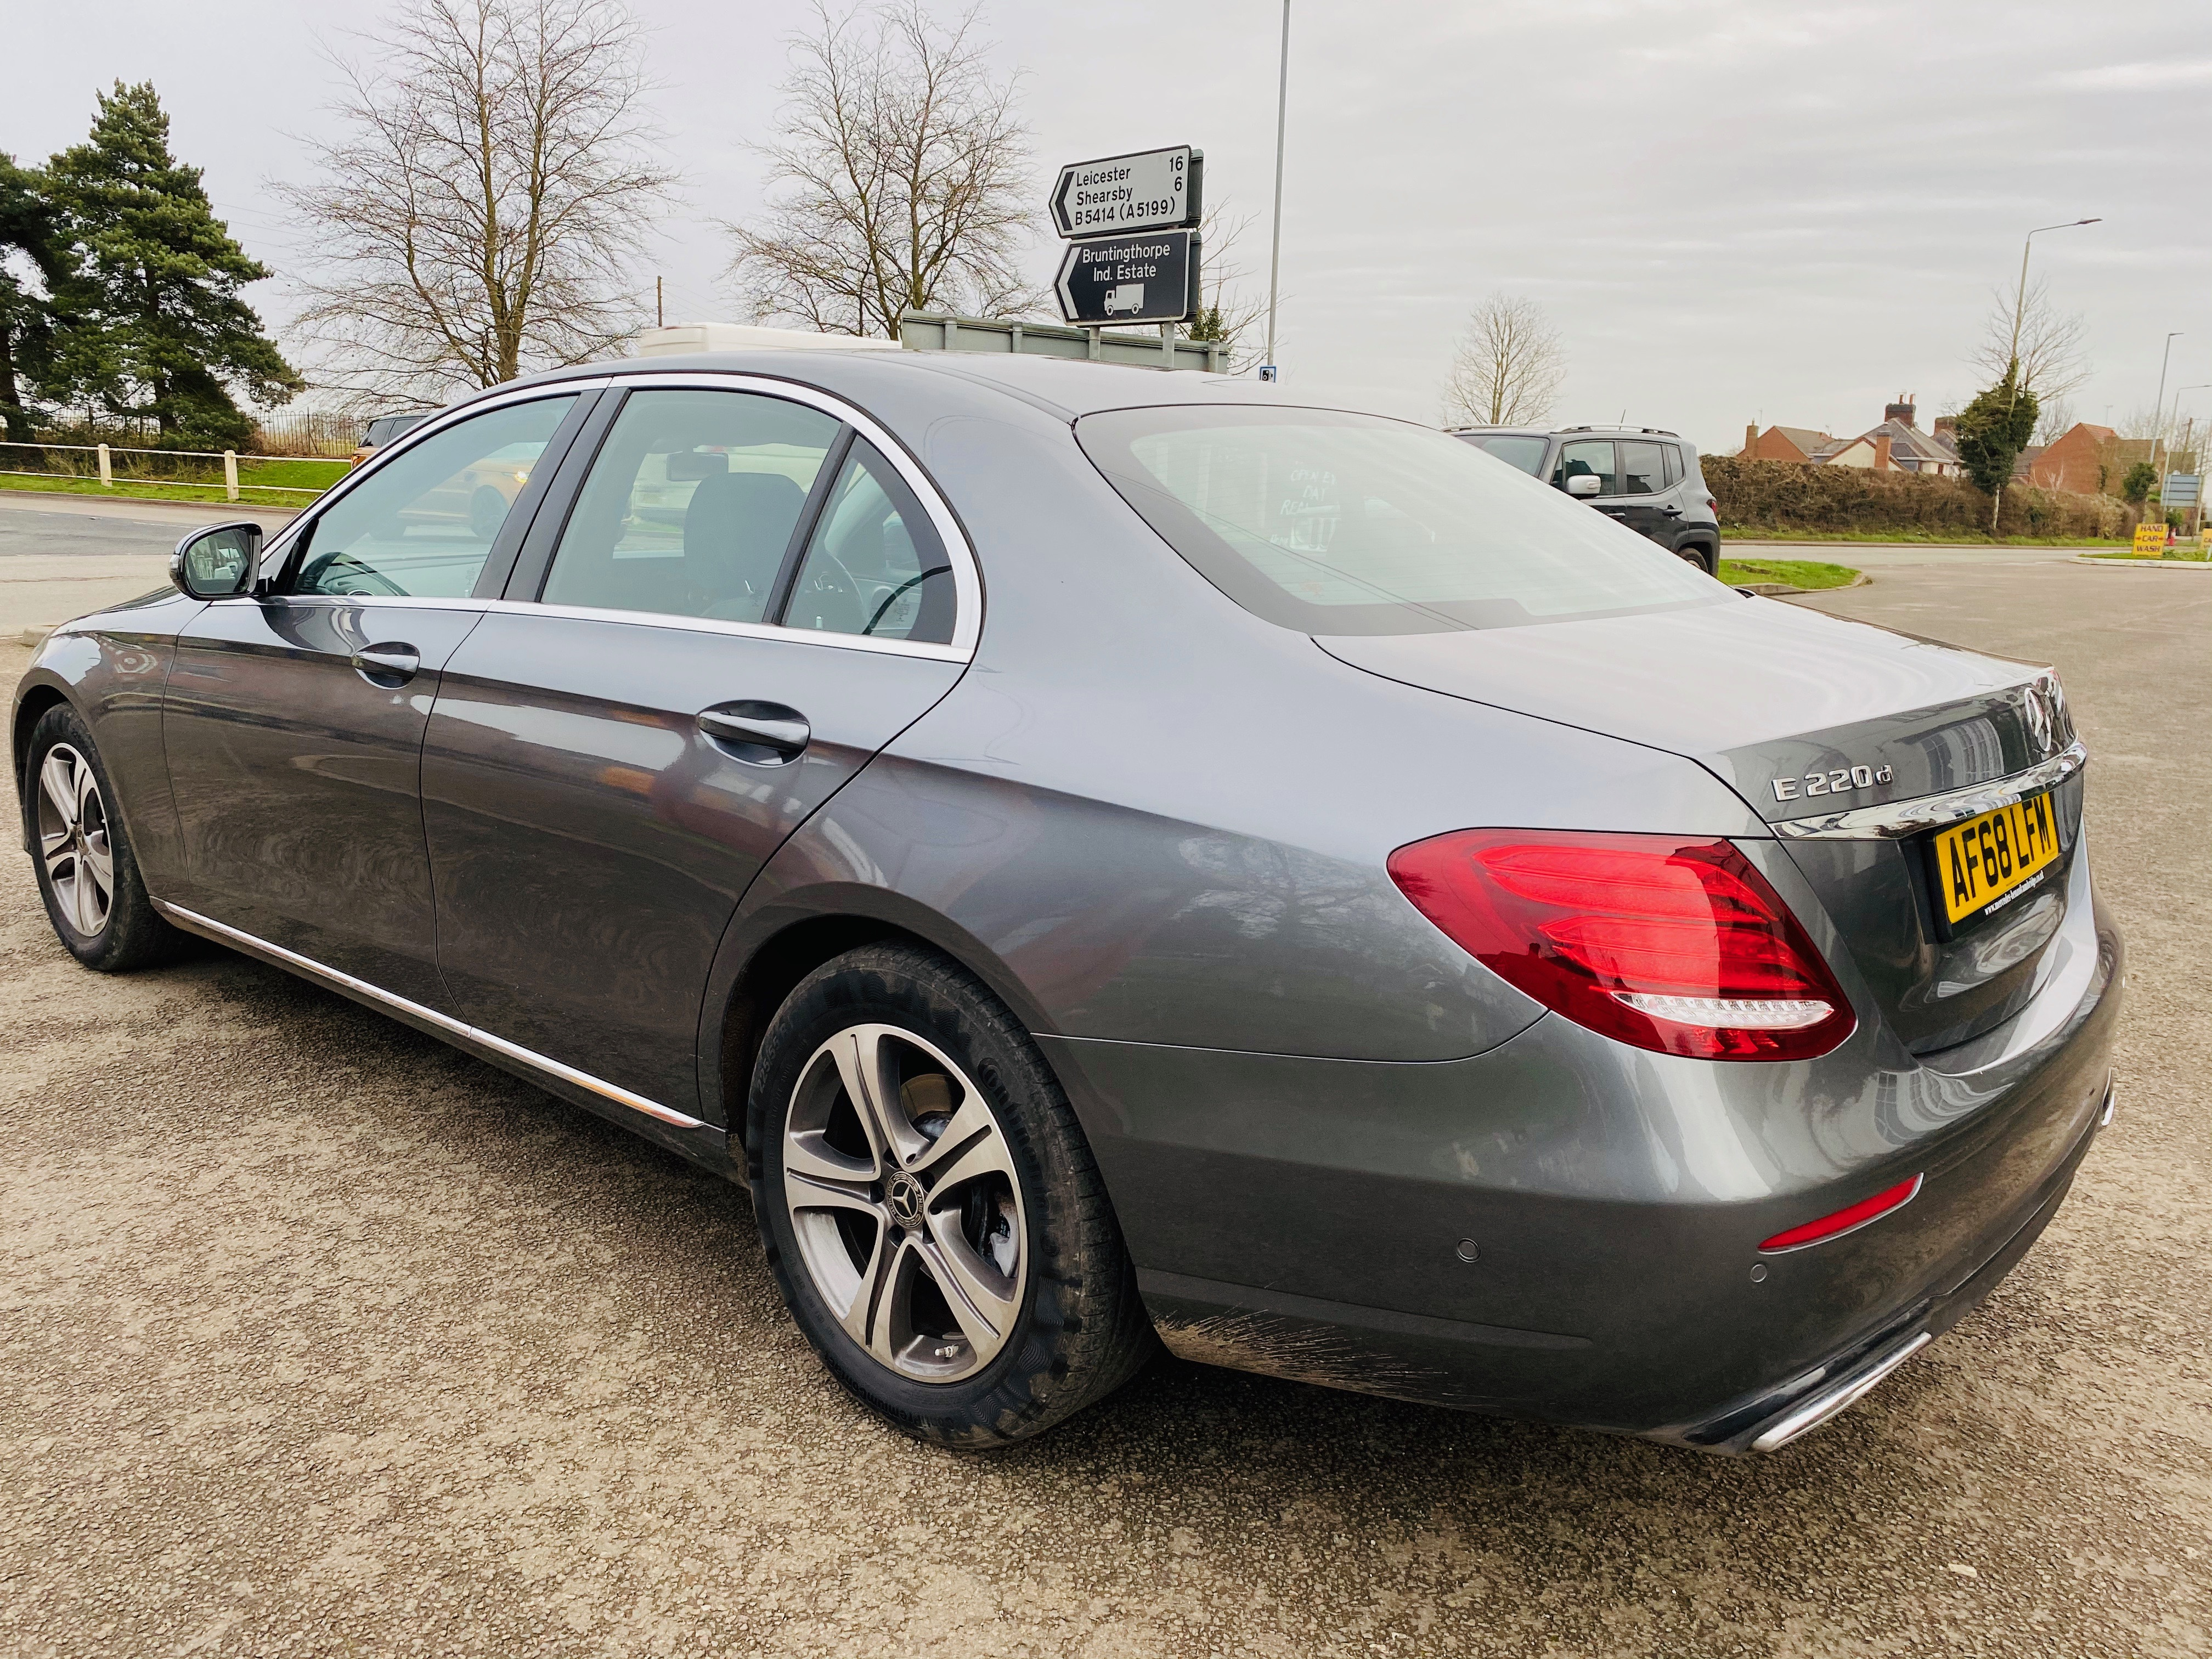 """ON SALE MERCEDES E220d """"SPECIAL EQUIPMENT"""" 9G-TRONIC (2019 MODEL) *GREAT SPEC*SAT NAV - LEATHER - Image 6 of 26"""